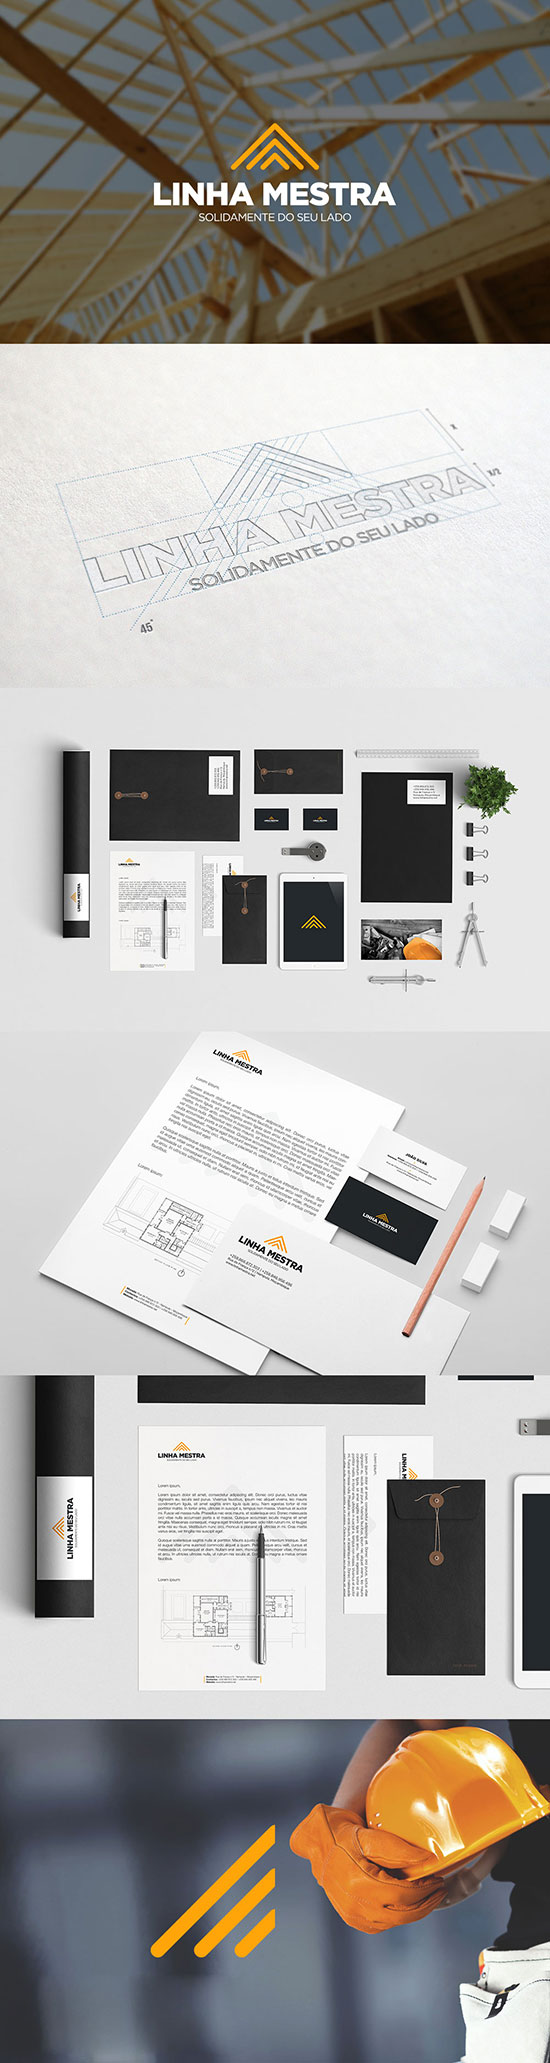 Construction Company Identity Designs